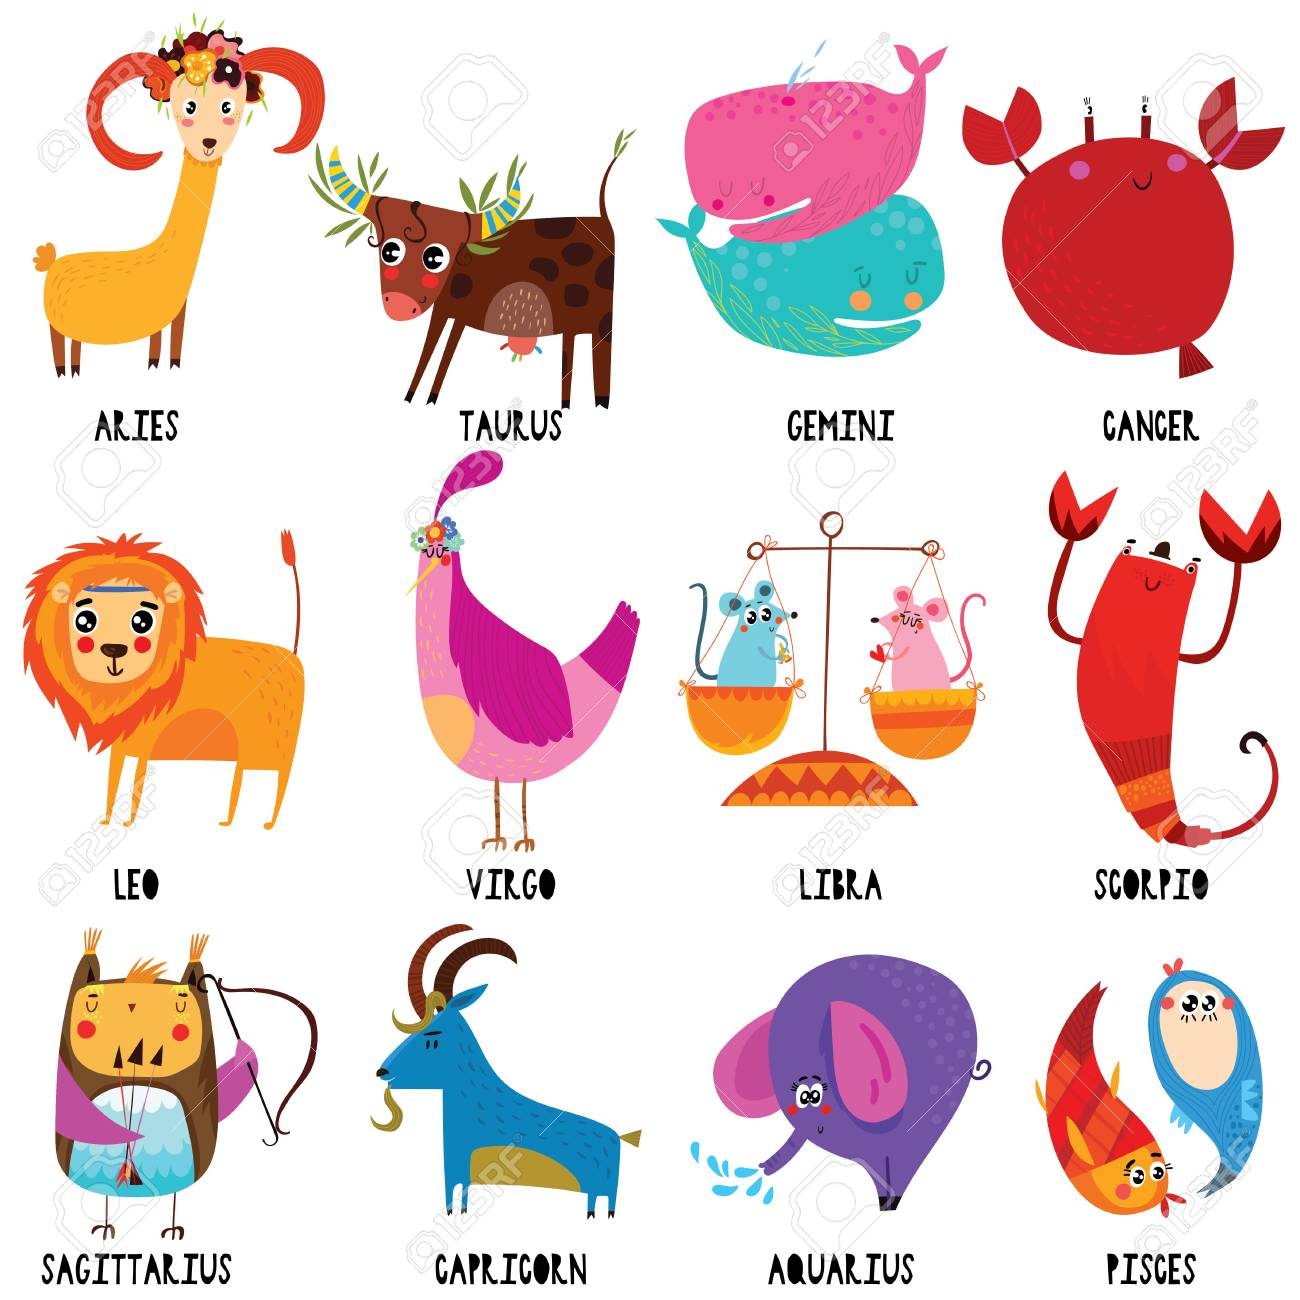 Daily Horoscope for November 17: Astrological Prediction for Zodiac Signs